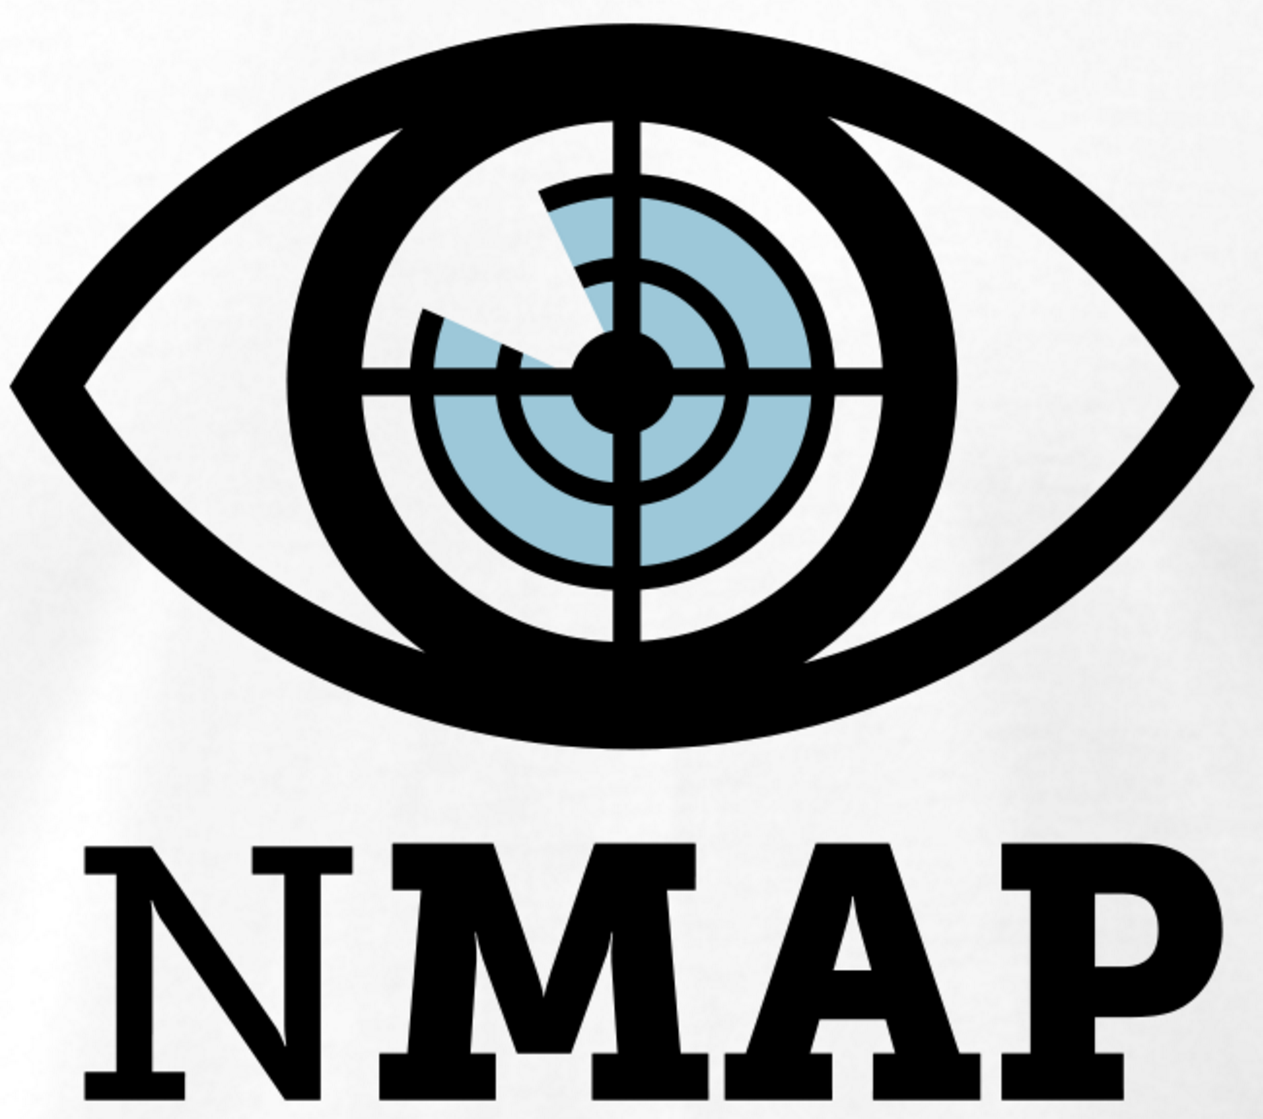 how to detect nmap scan